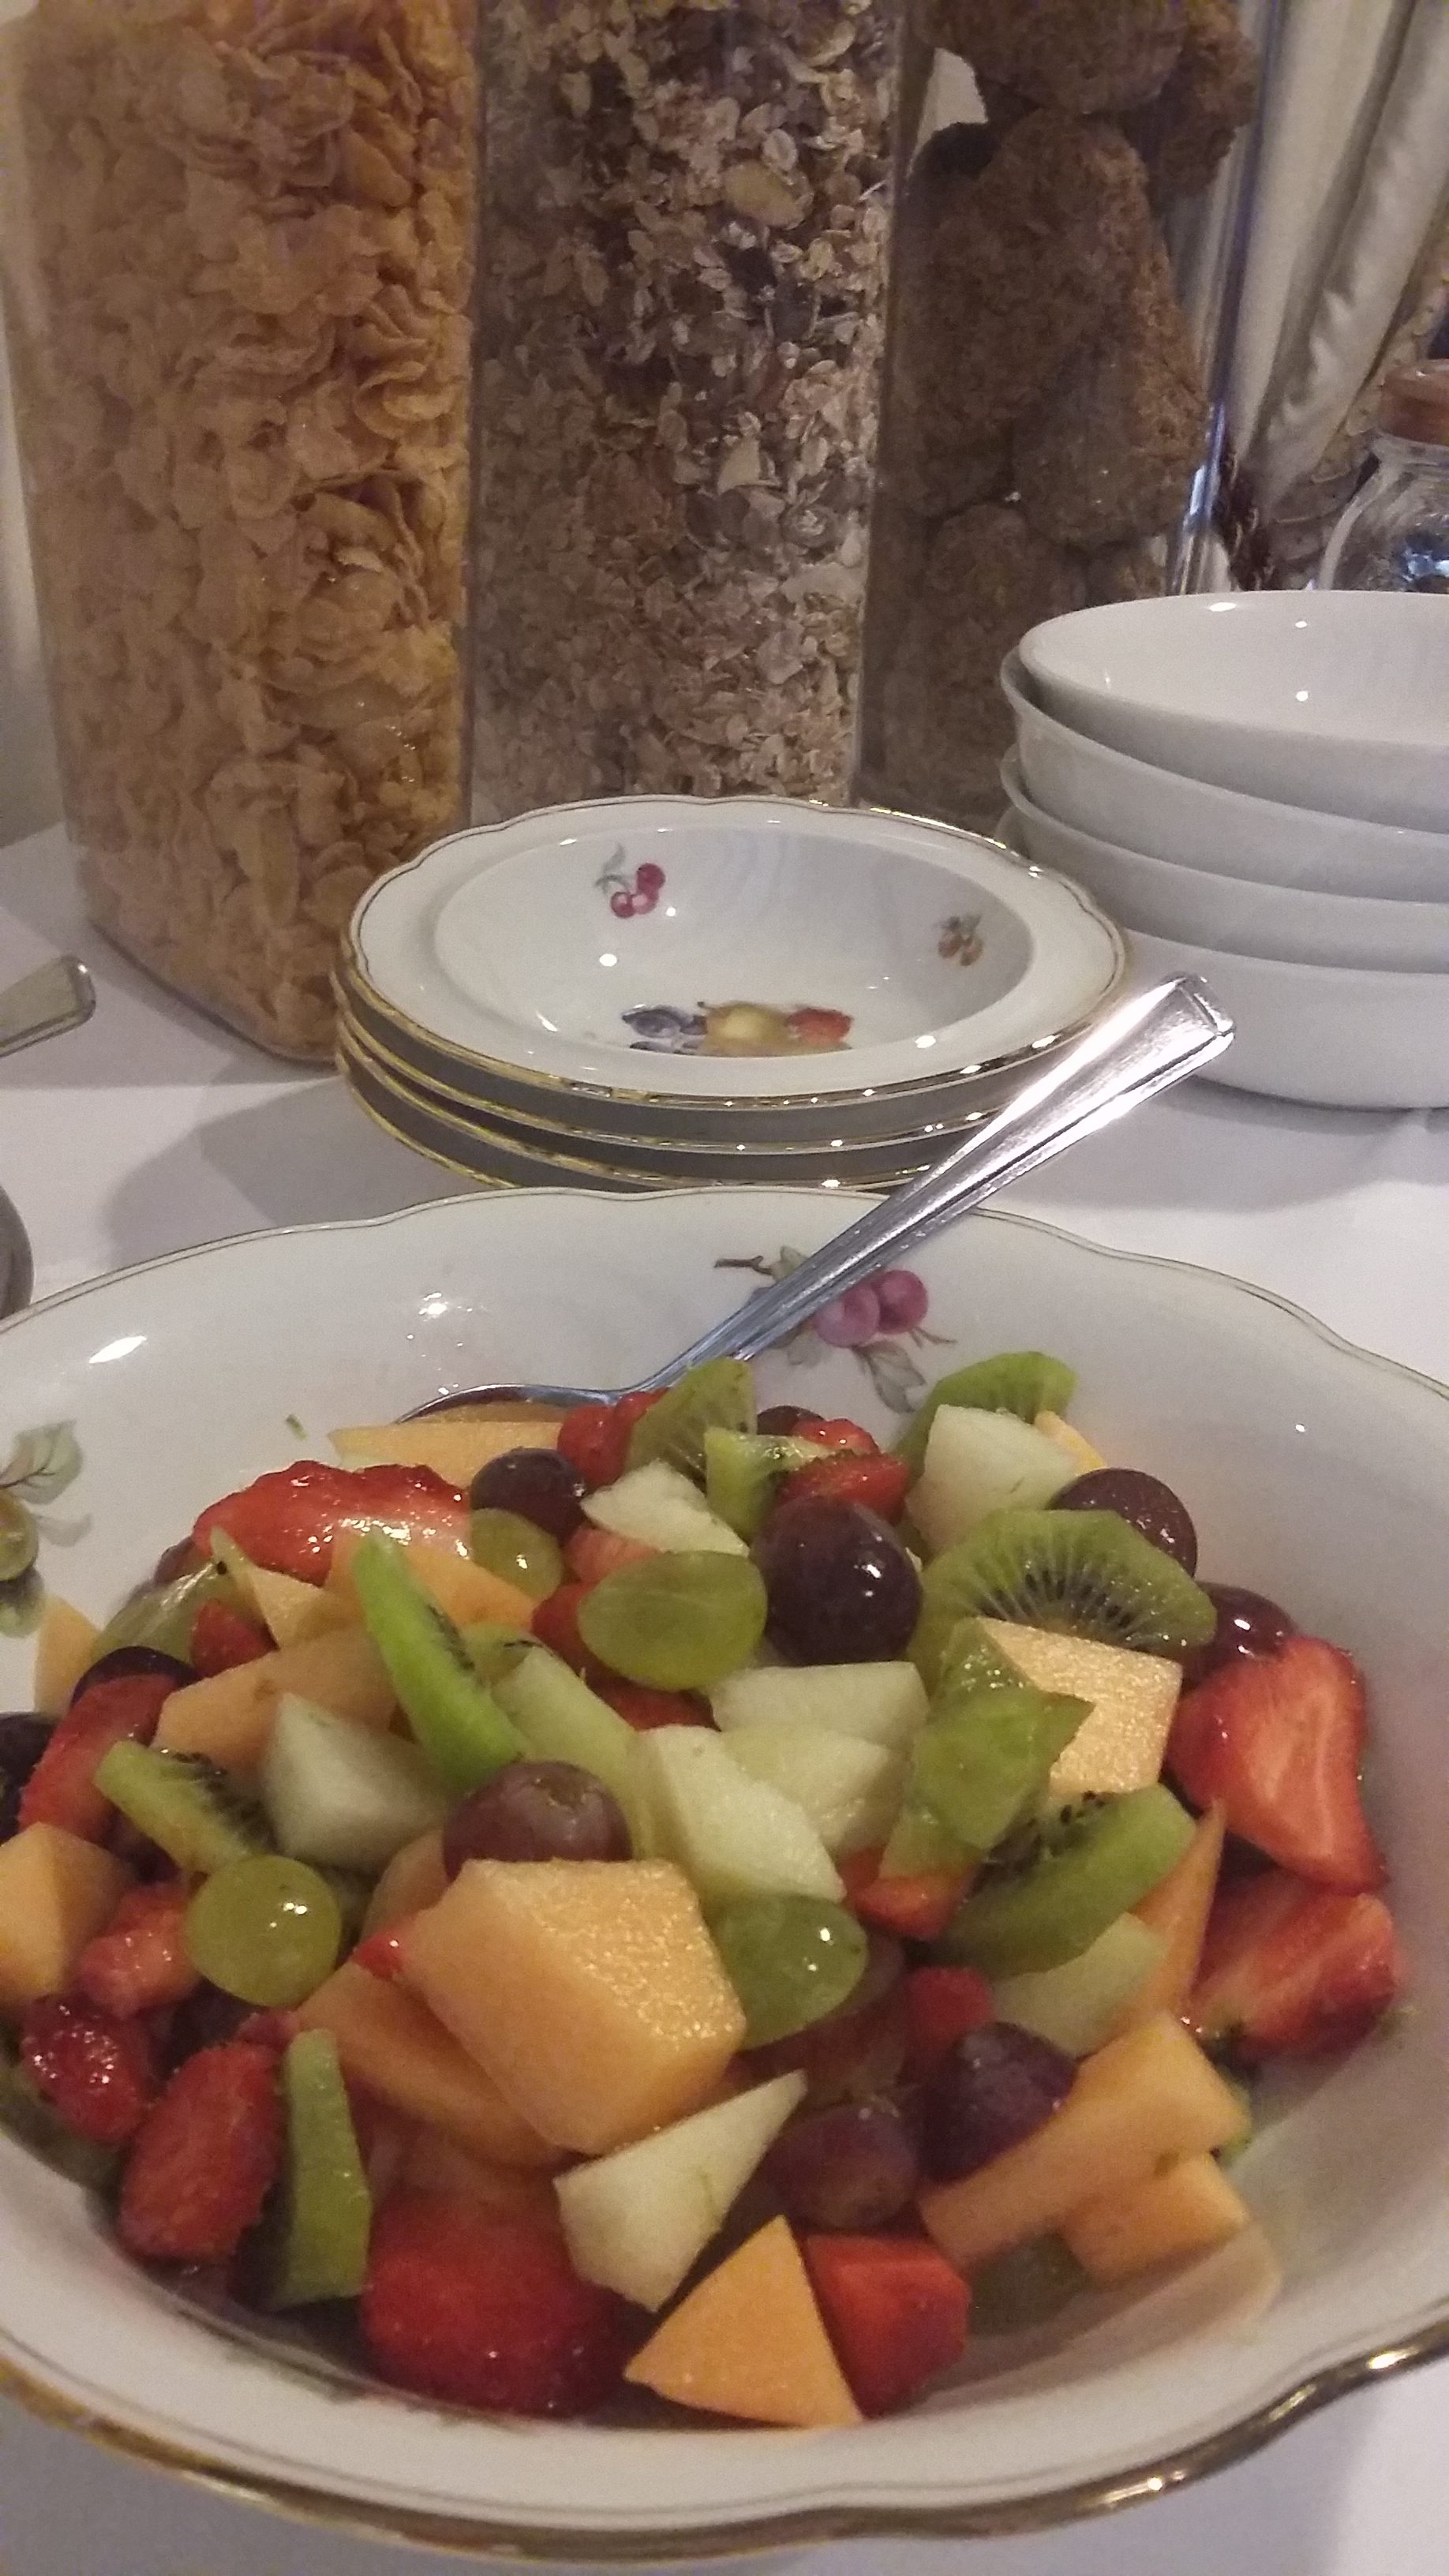 Jim's famous fresh fruit salad, available daily